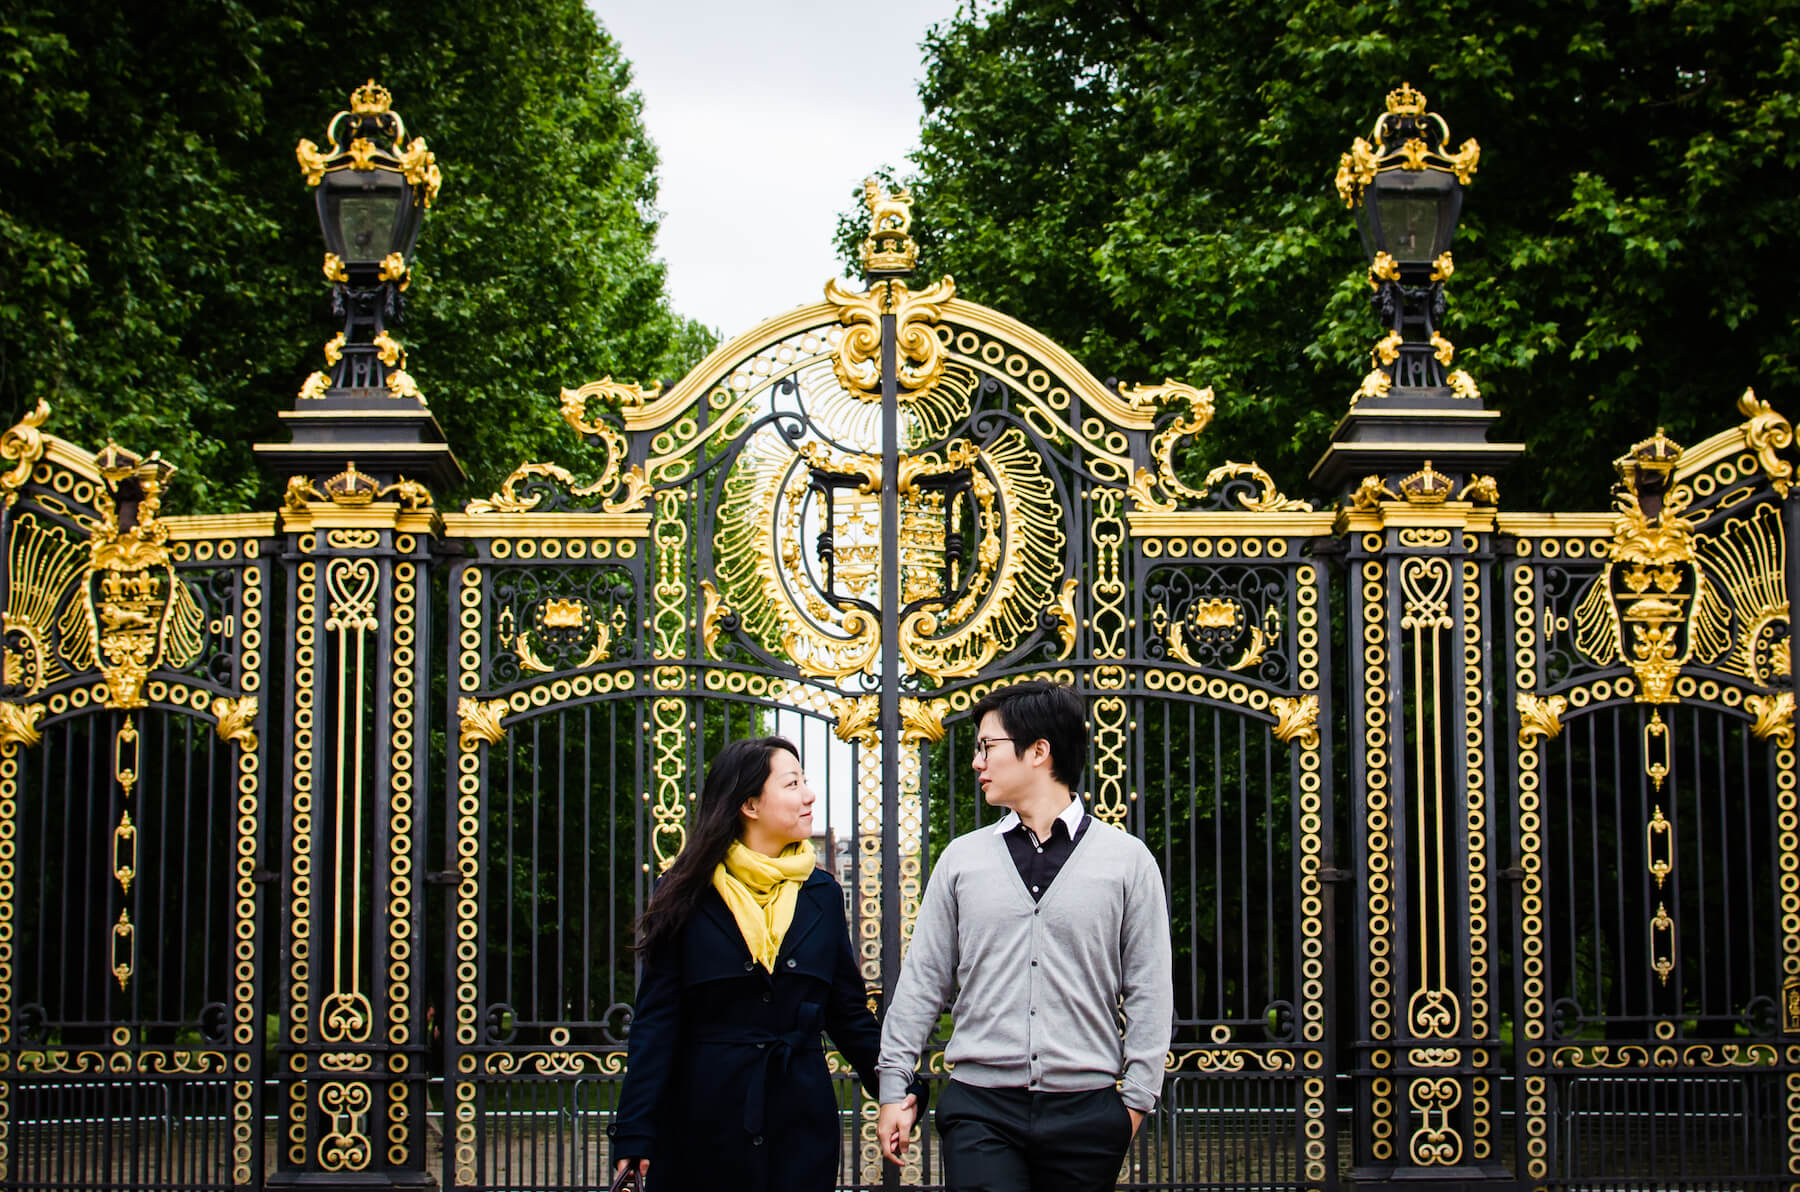 Asian couple looking at each other lovingly in front of the Buckingham Palace golden gates in London, UK